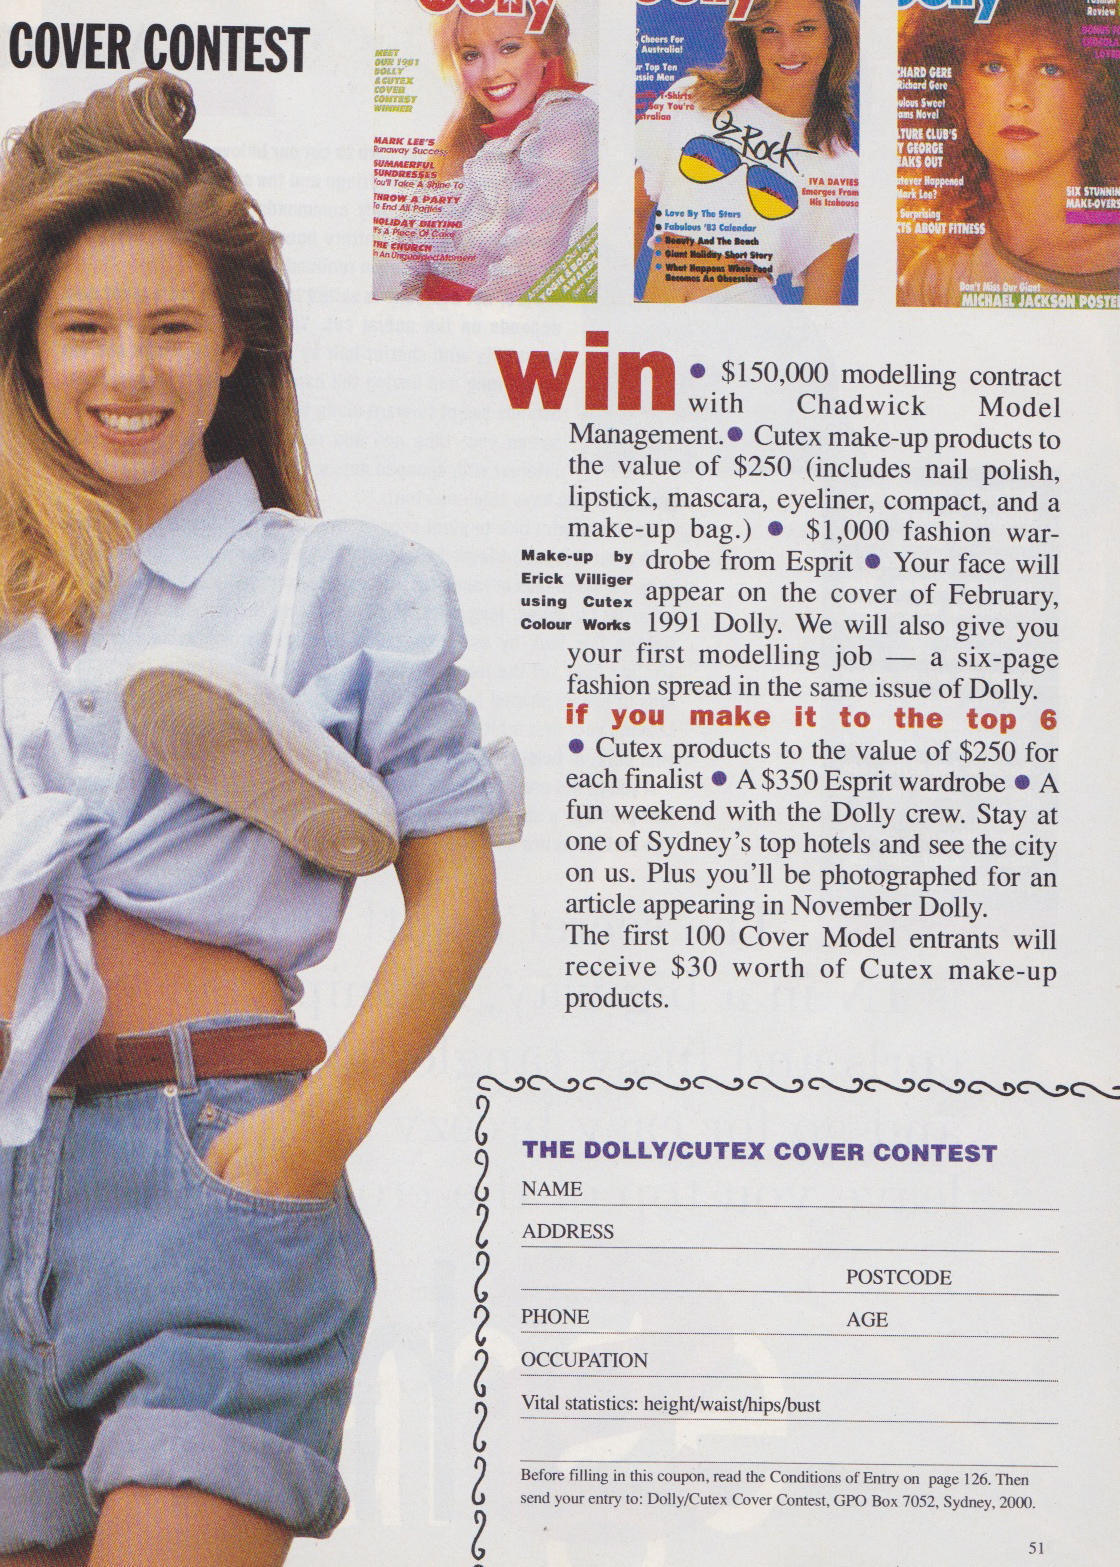 Dolly Covergirl Competition | 1990 Entry Form 02.jpeg